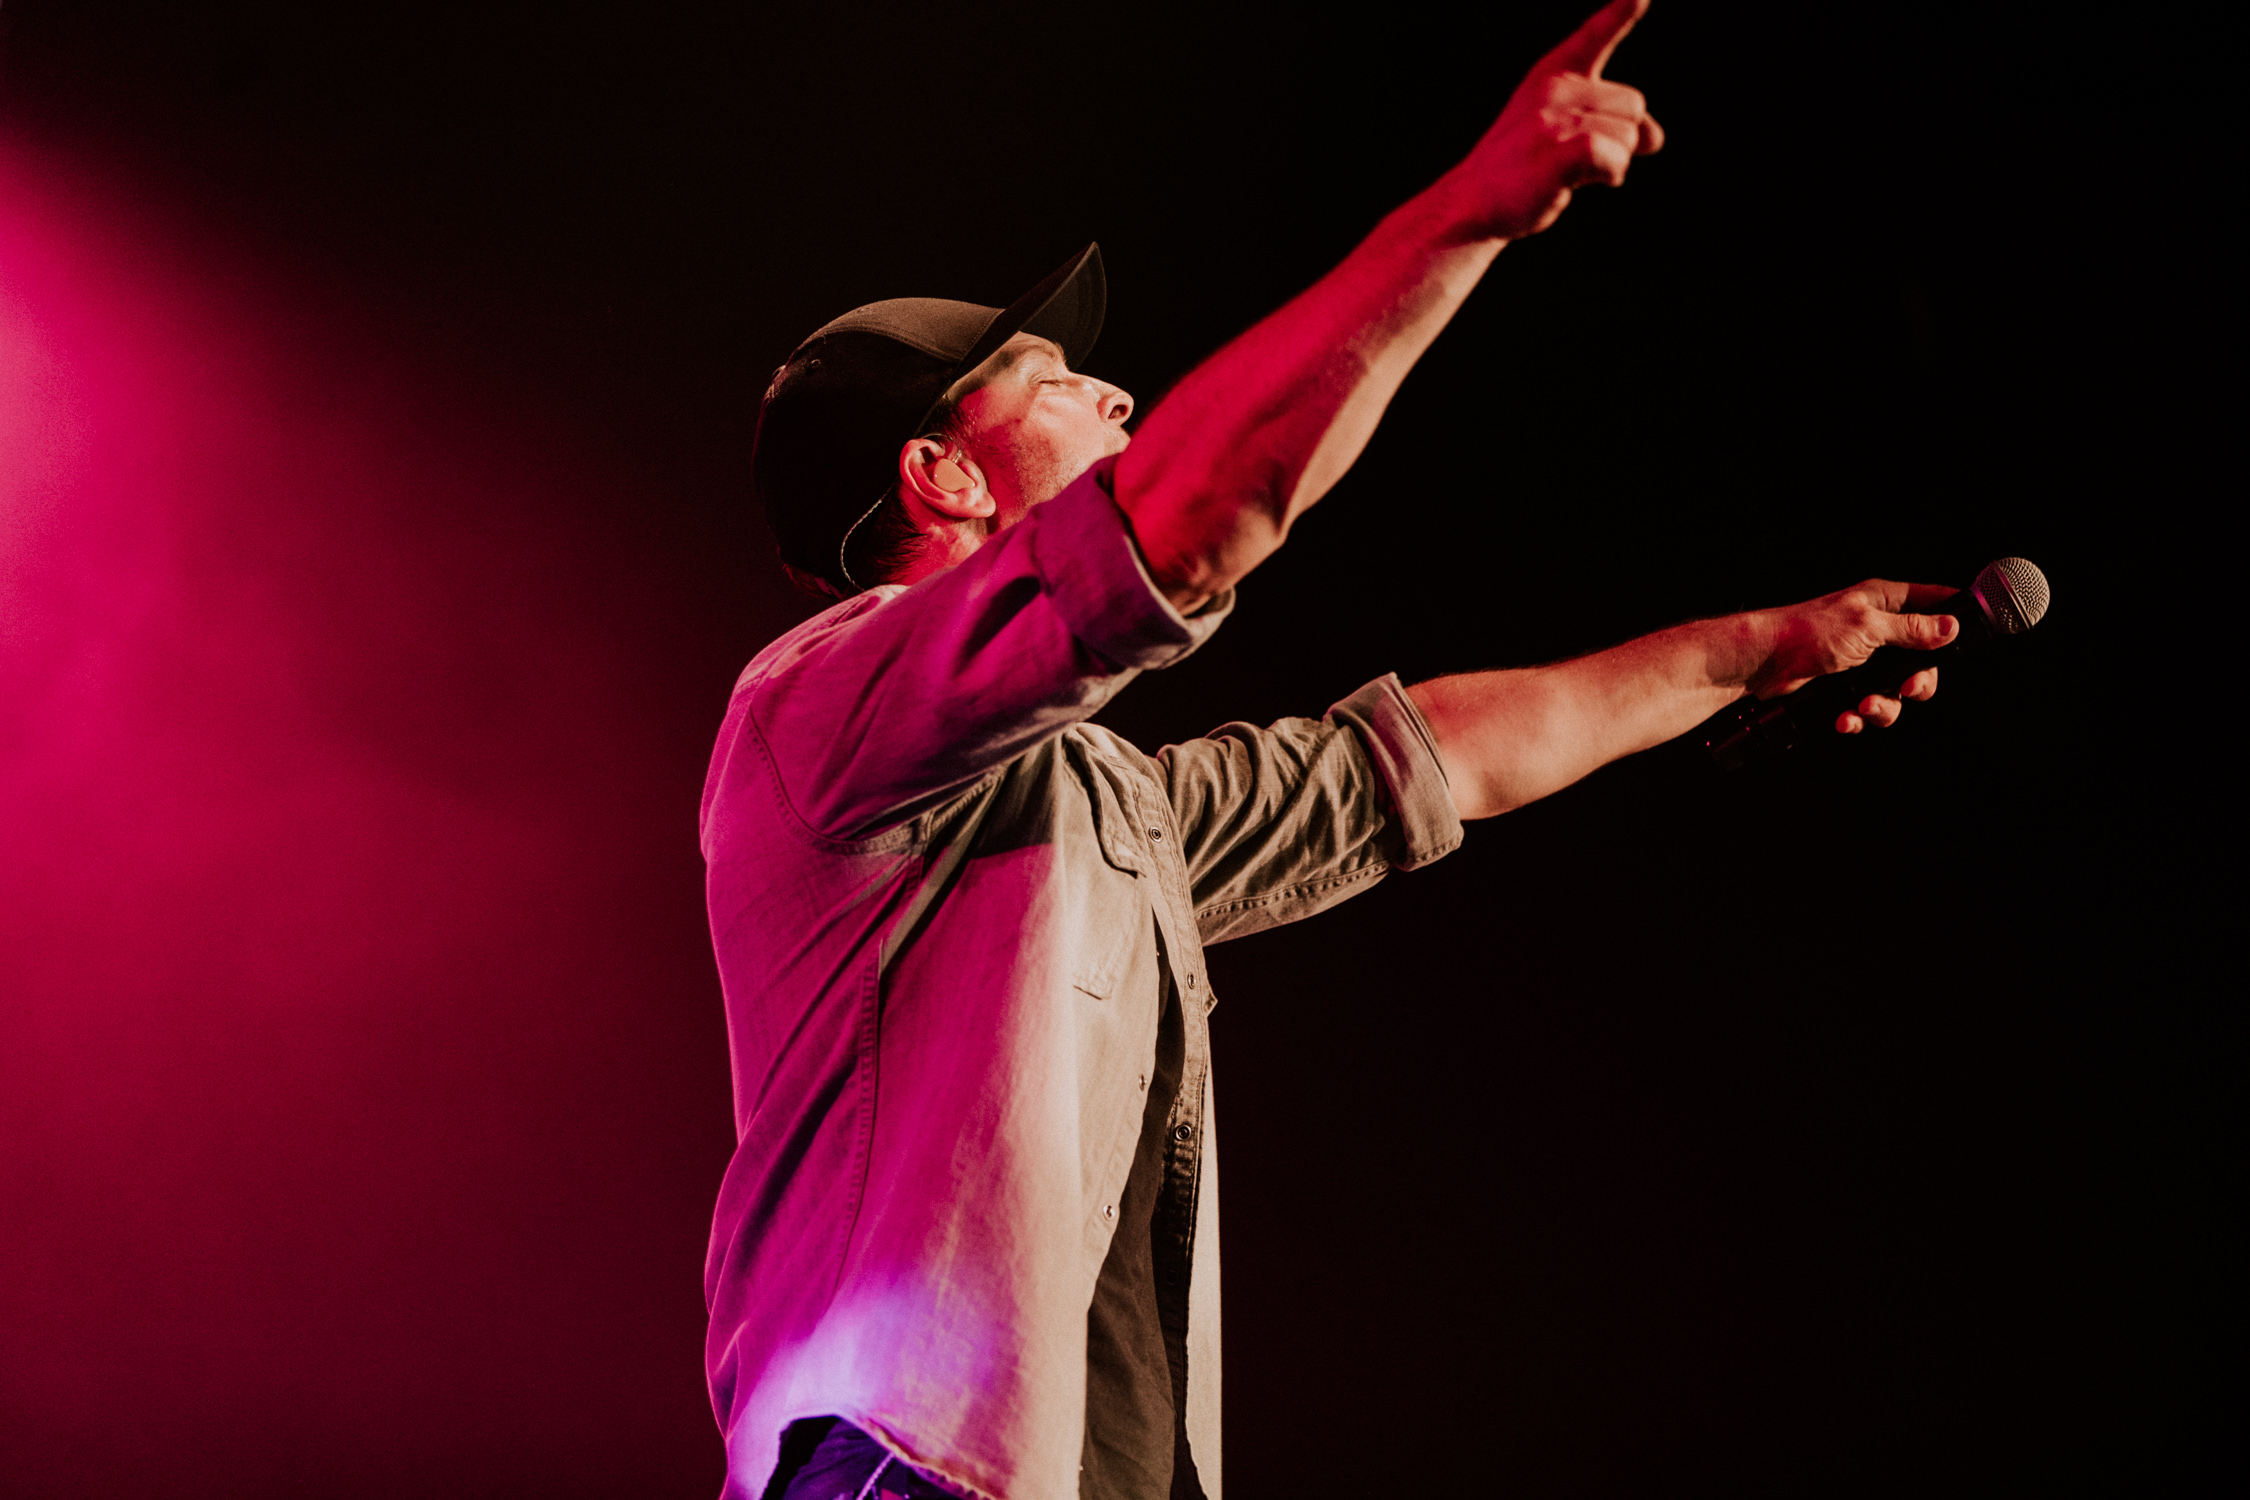 gavin-degraw-pink-light-concert-AnnaLeeMedia